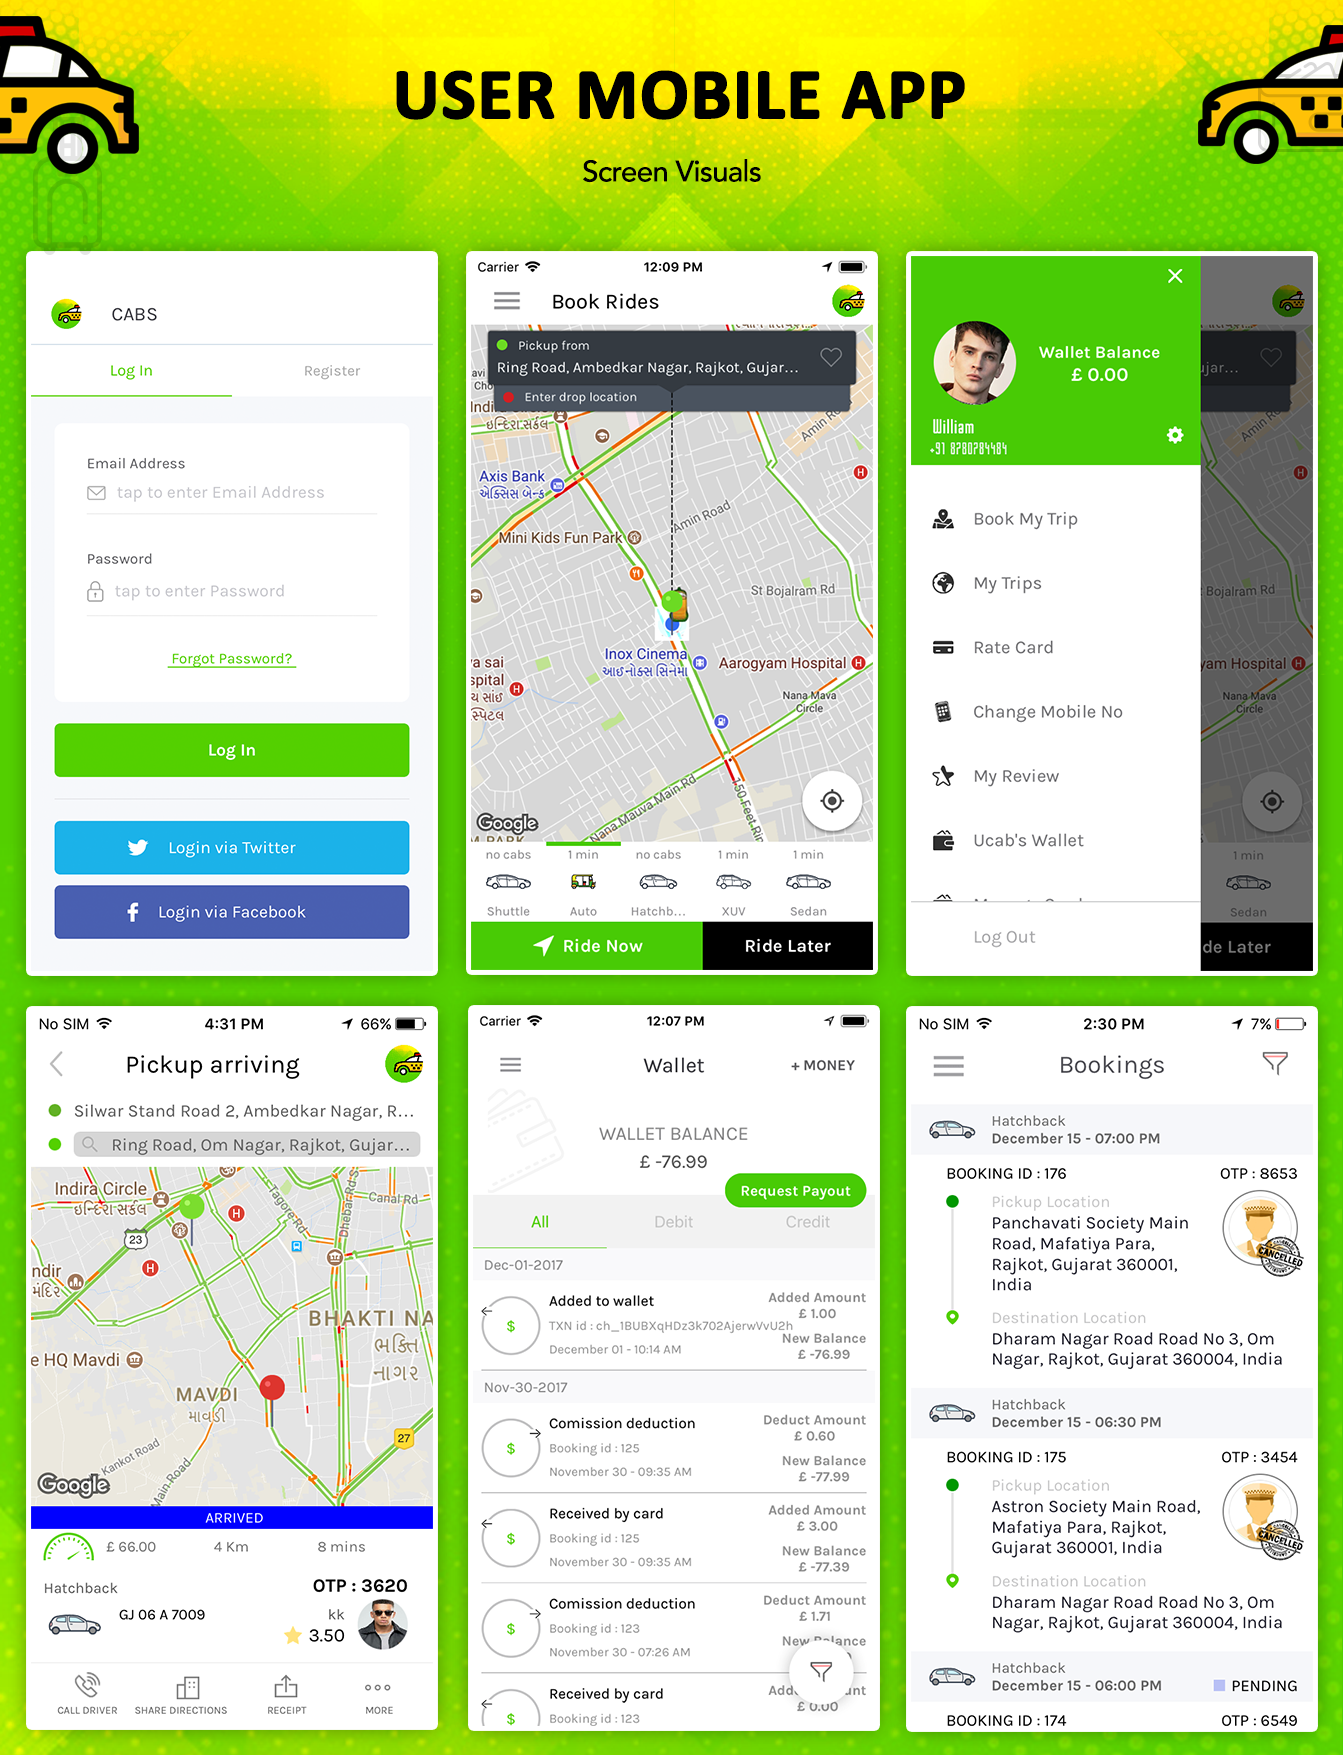 Taxi Booking Script - A Complete Clone of UBER with User,Driver & Backend CMS Coded with Native iOS - 13